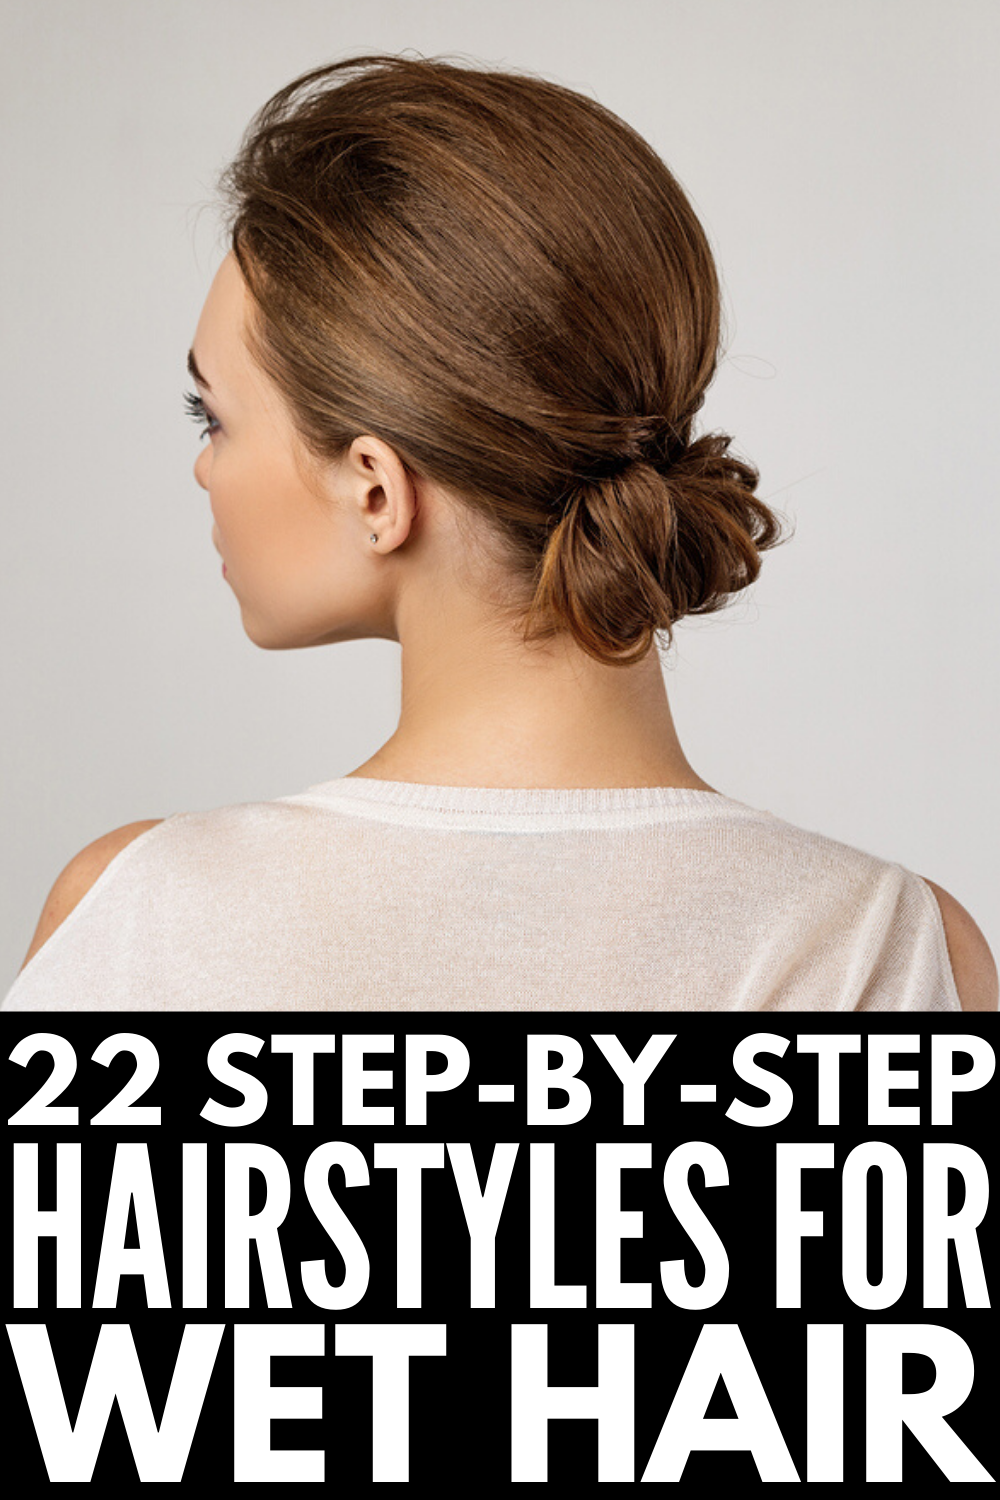 Running Late 22 Wet Hair Hairstyles For All Hair Lengths Short Hair Tutorial Wet Hair Hair Lengths